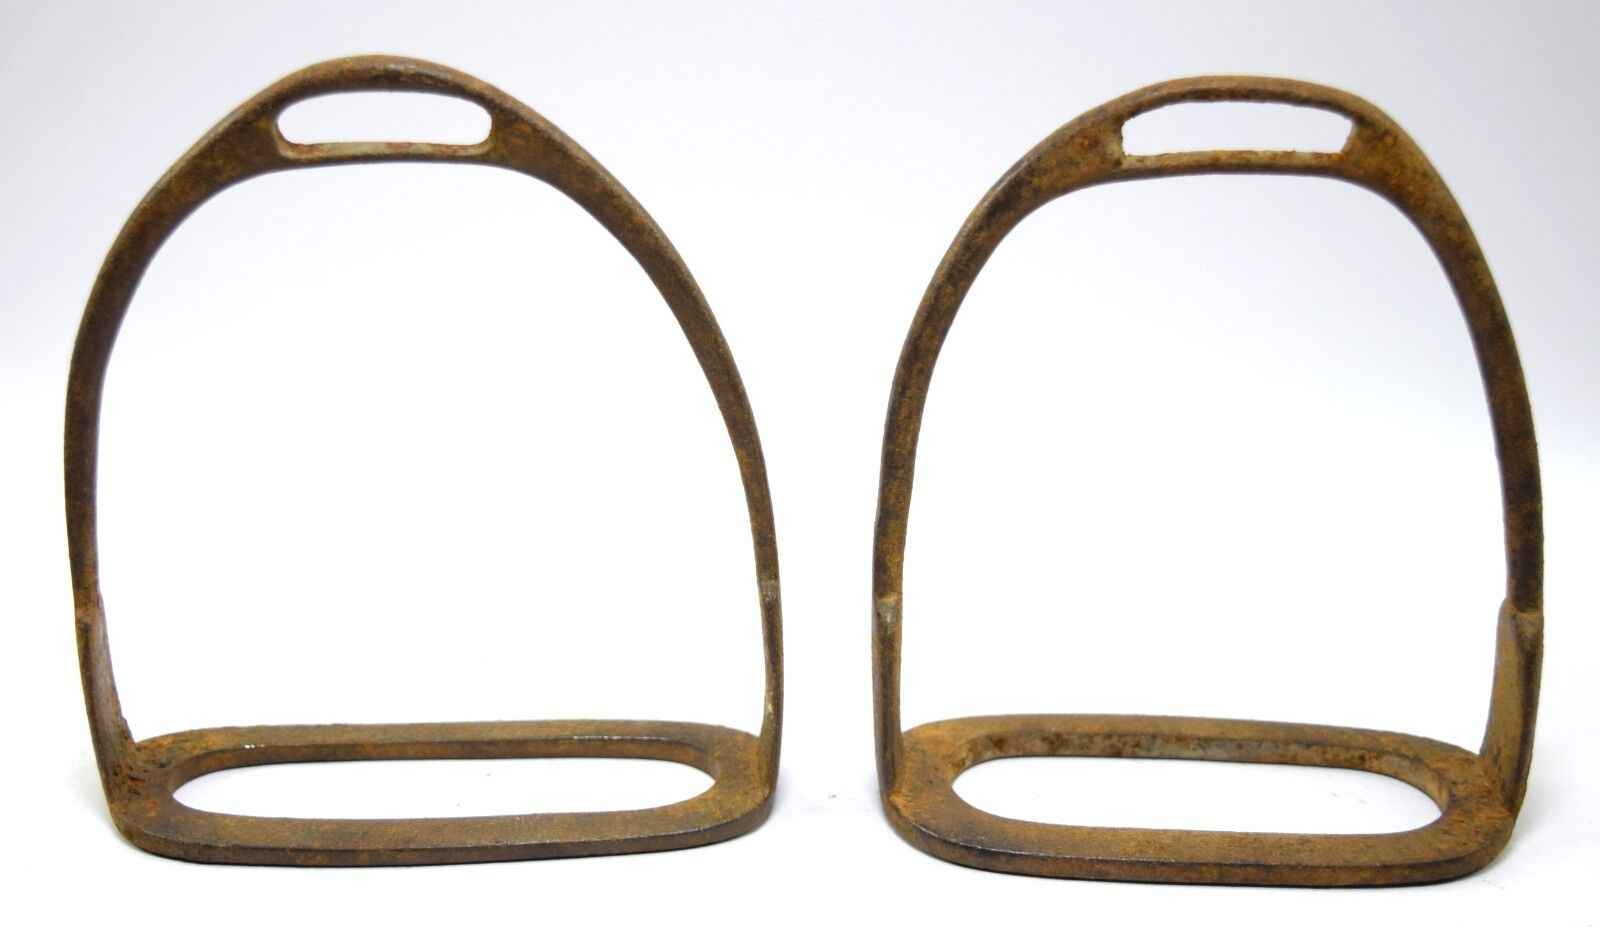 Indian Collectible Vintage Horse Pedal Feet Stirrup Pair Wall Décor. G42-156 US